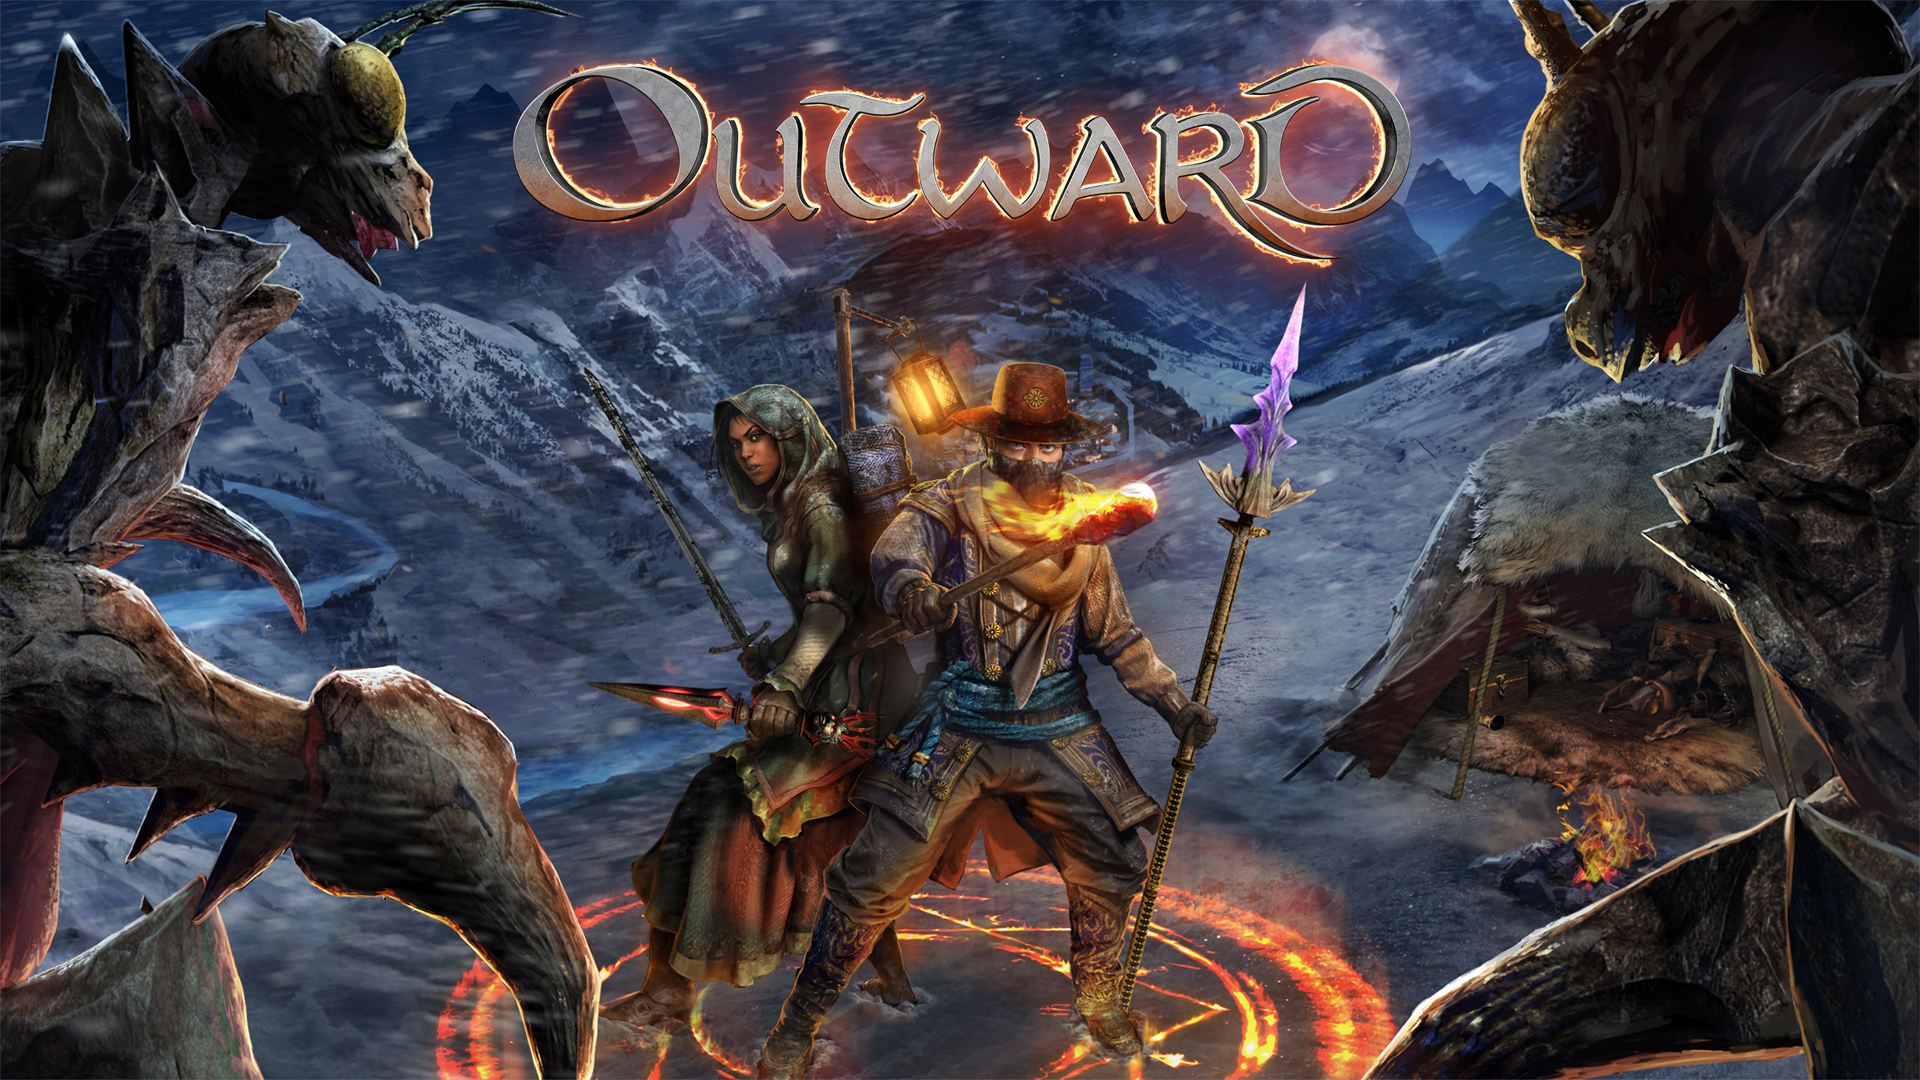 Games heroes Wallpaper from Outward gamepressurecom 1920x1080